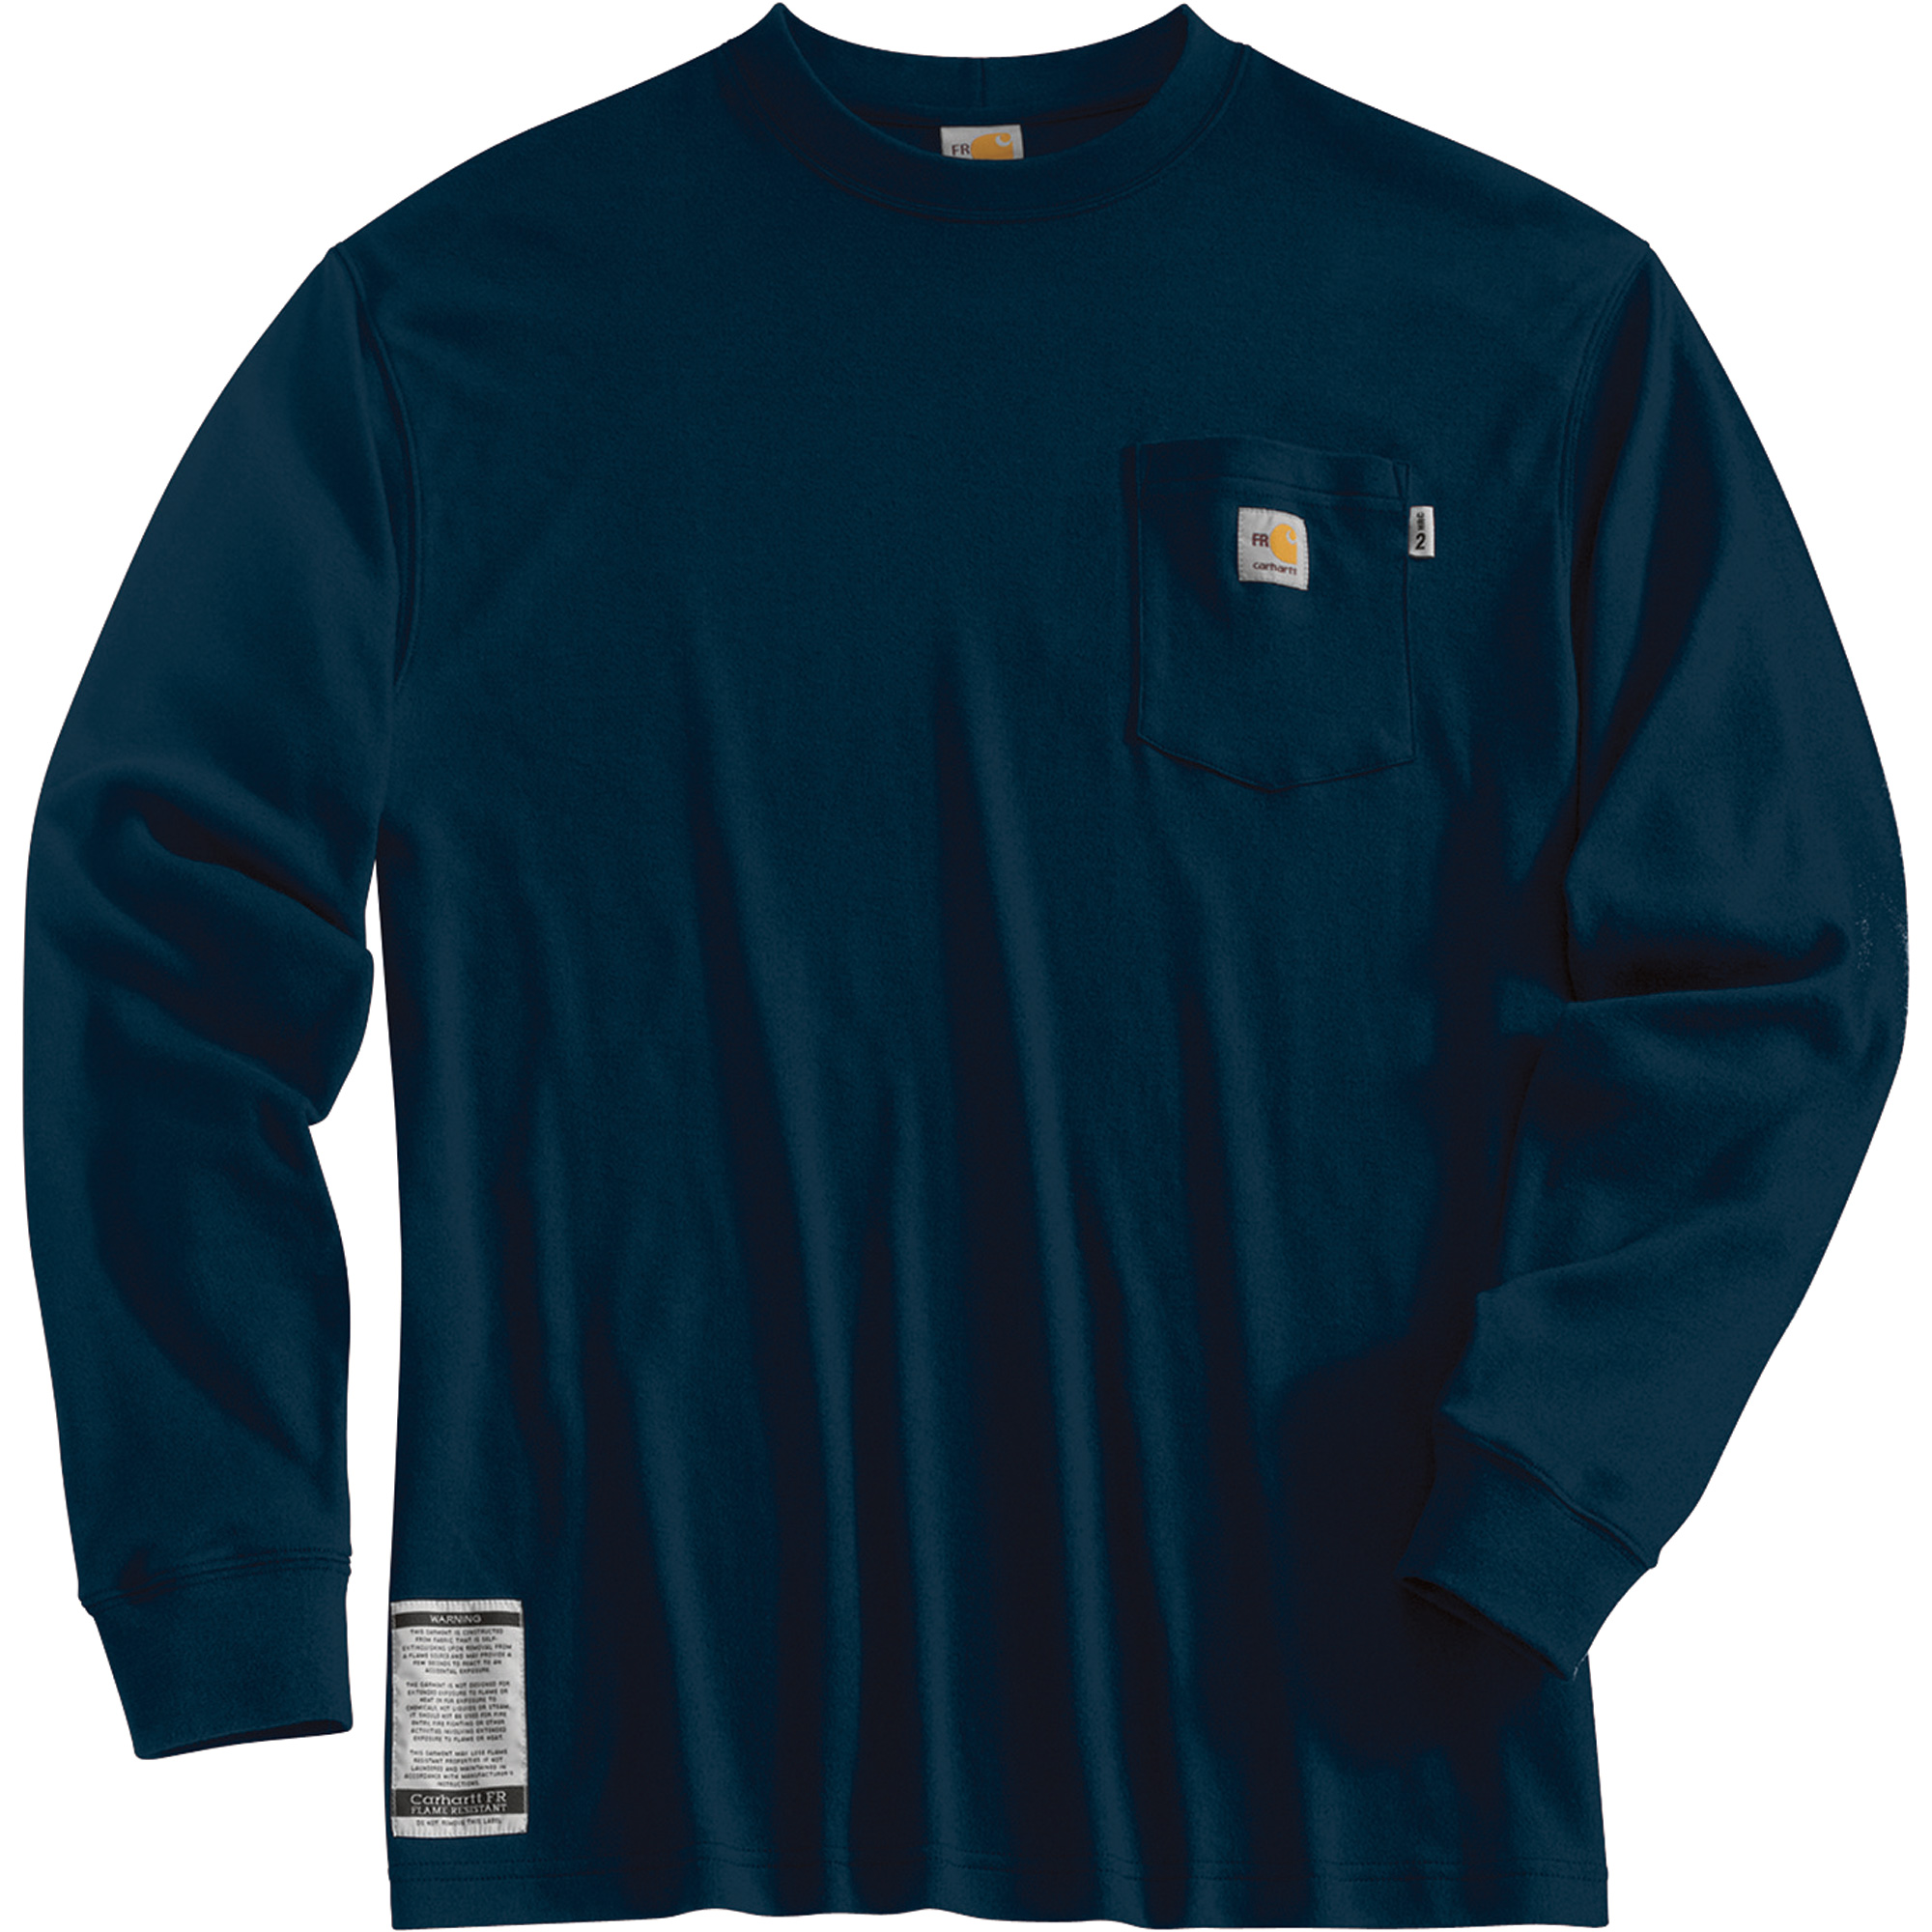 Find great deals on eBay for mens tall long sleeve t-shirts. Shop with confidence.